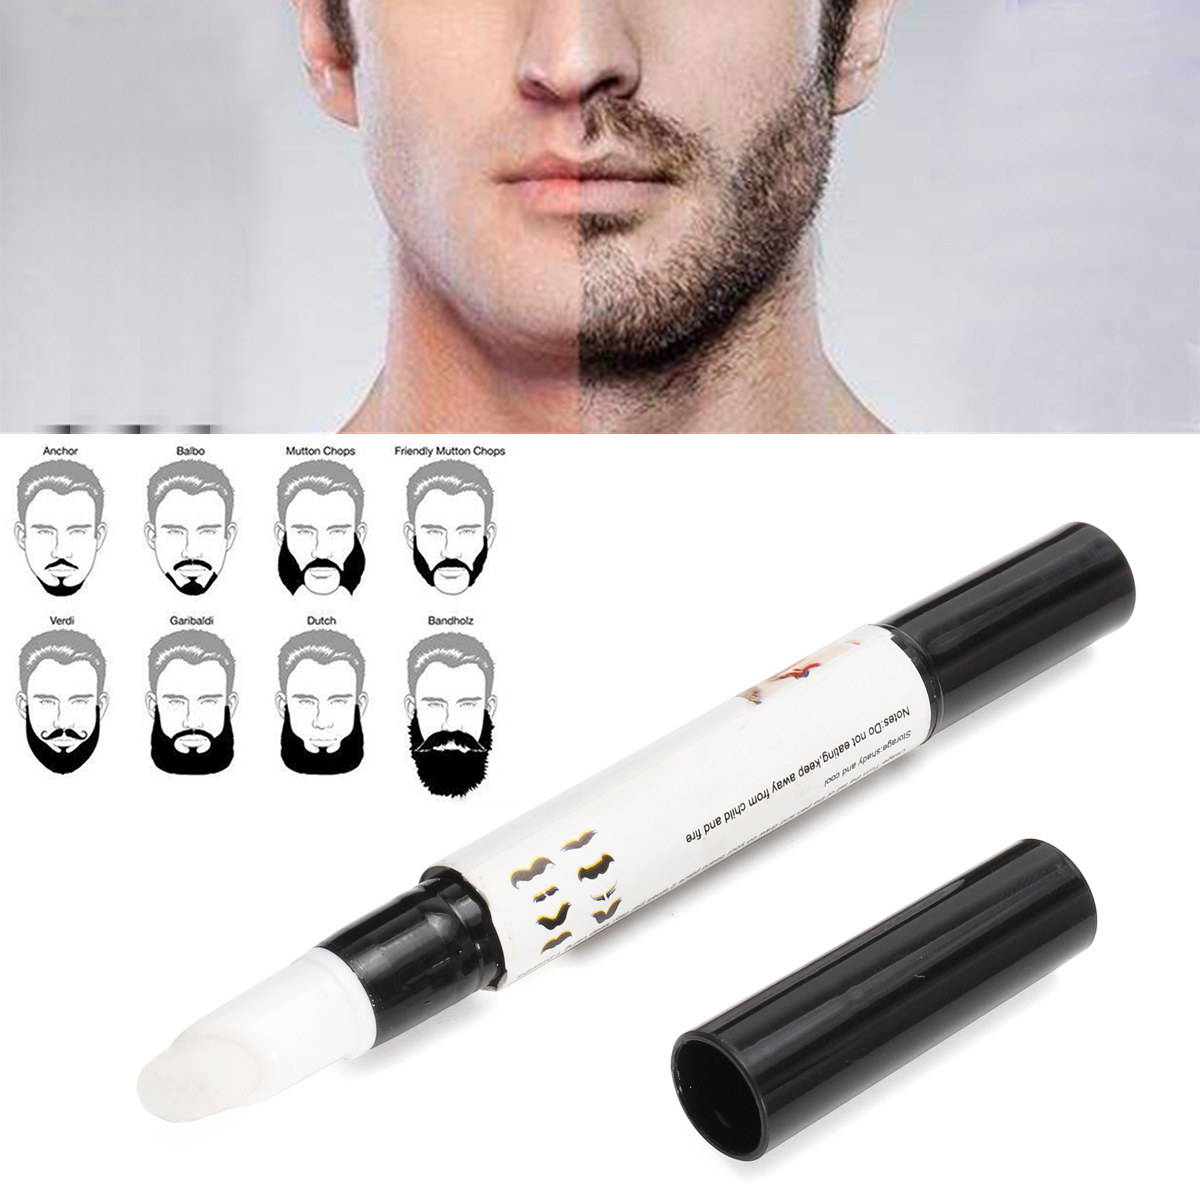 3pcs Natrual Beard Growth Pen Facial Hair Mustache Sideburns Eyebrow Enhancer Cream